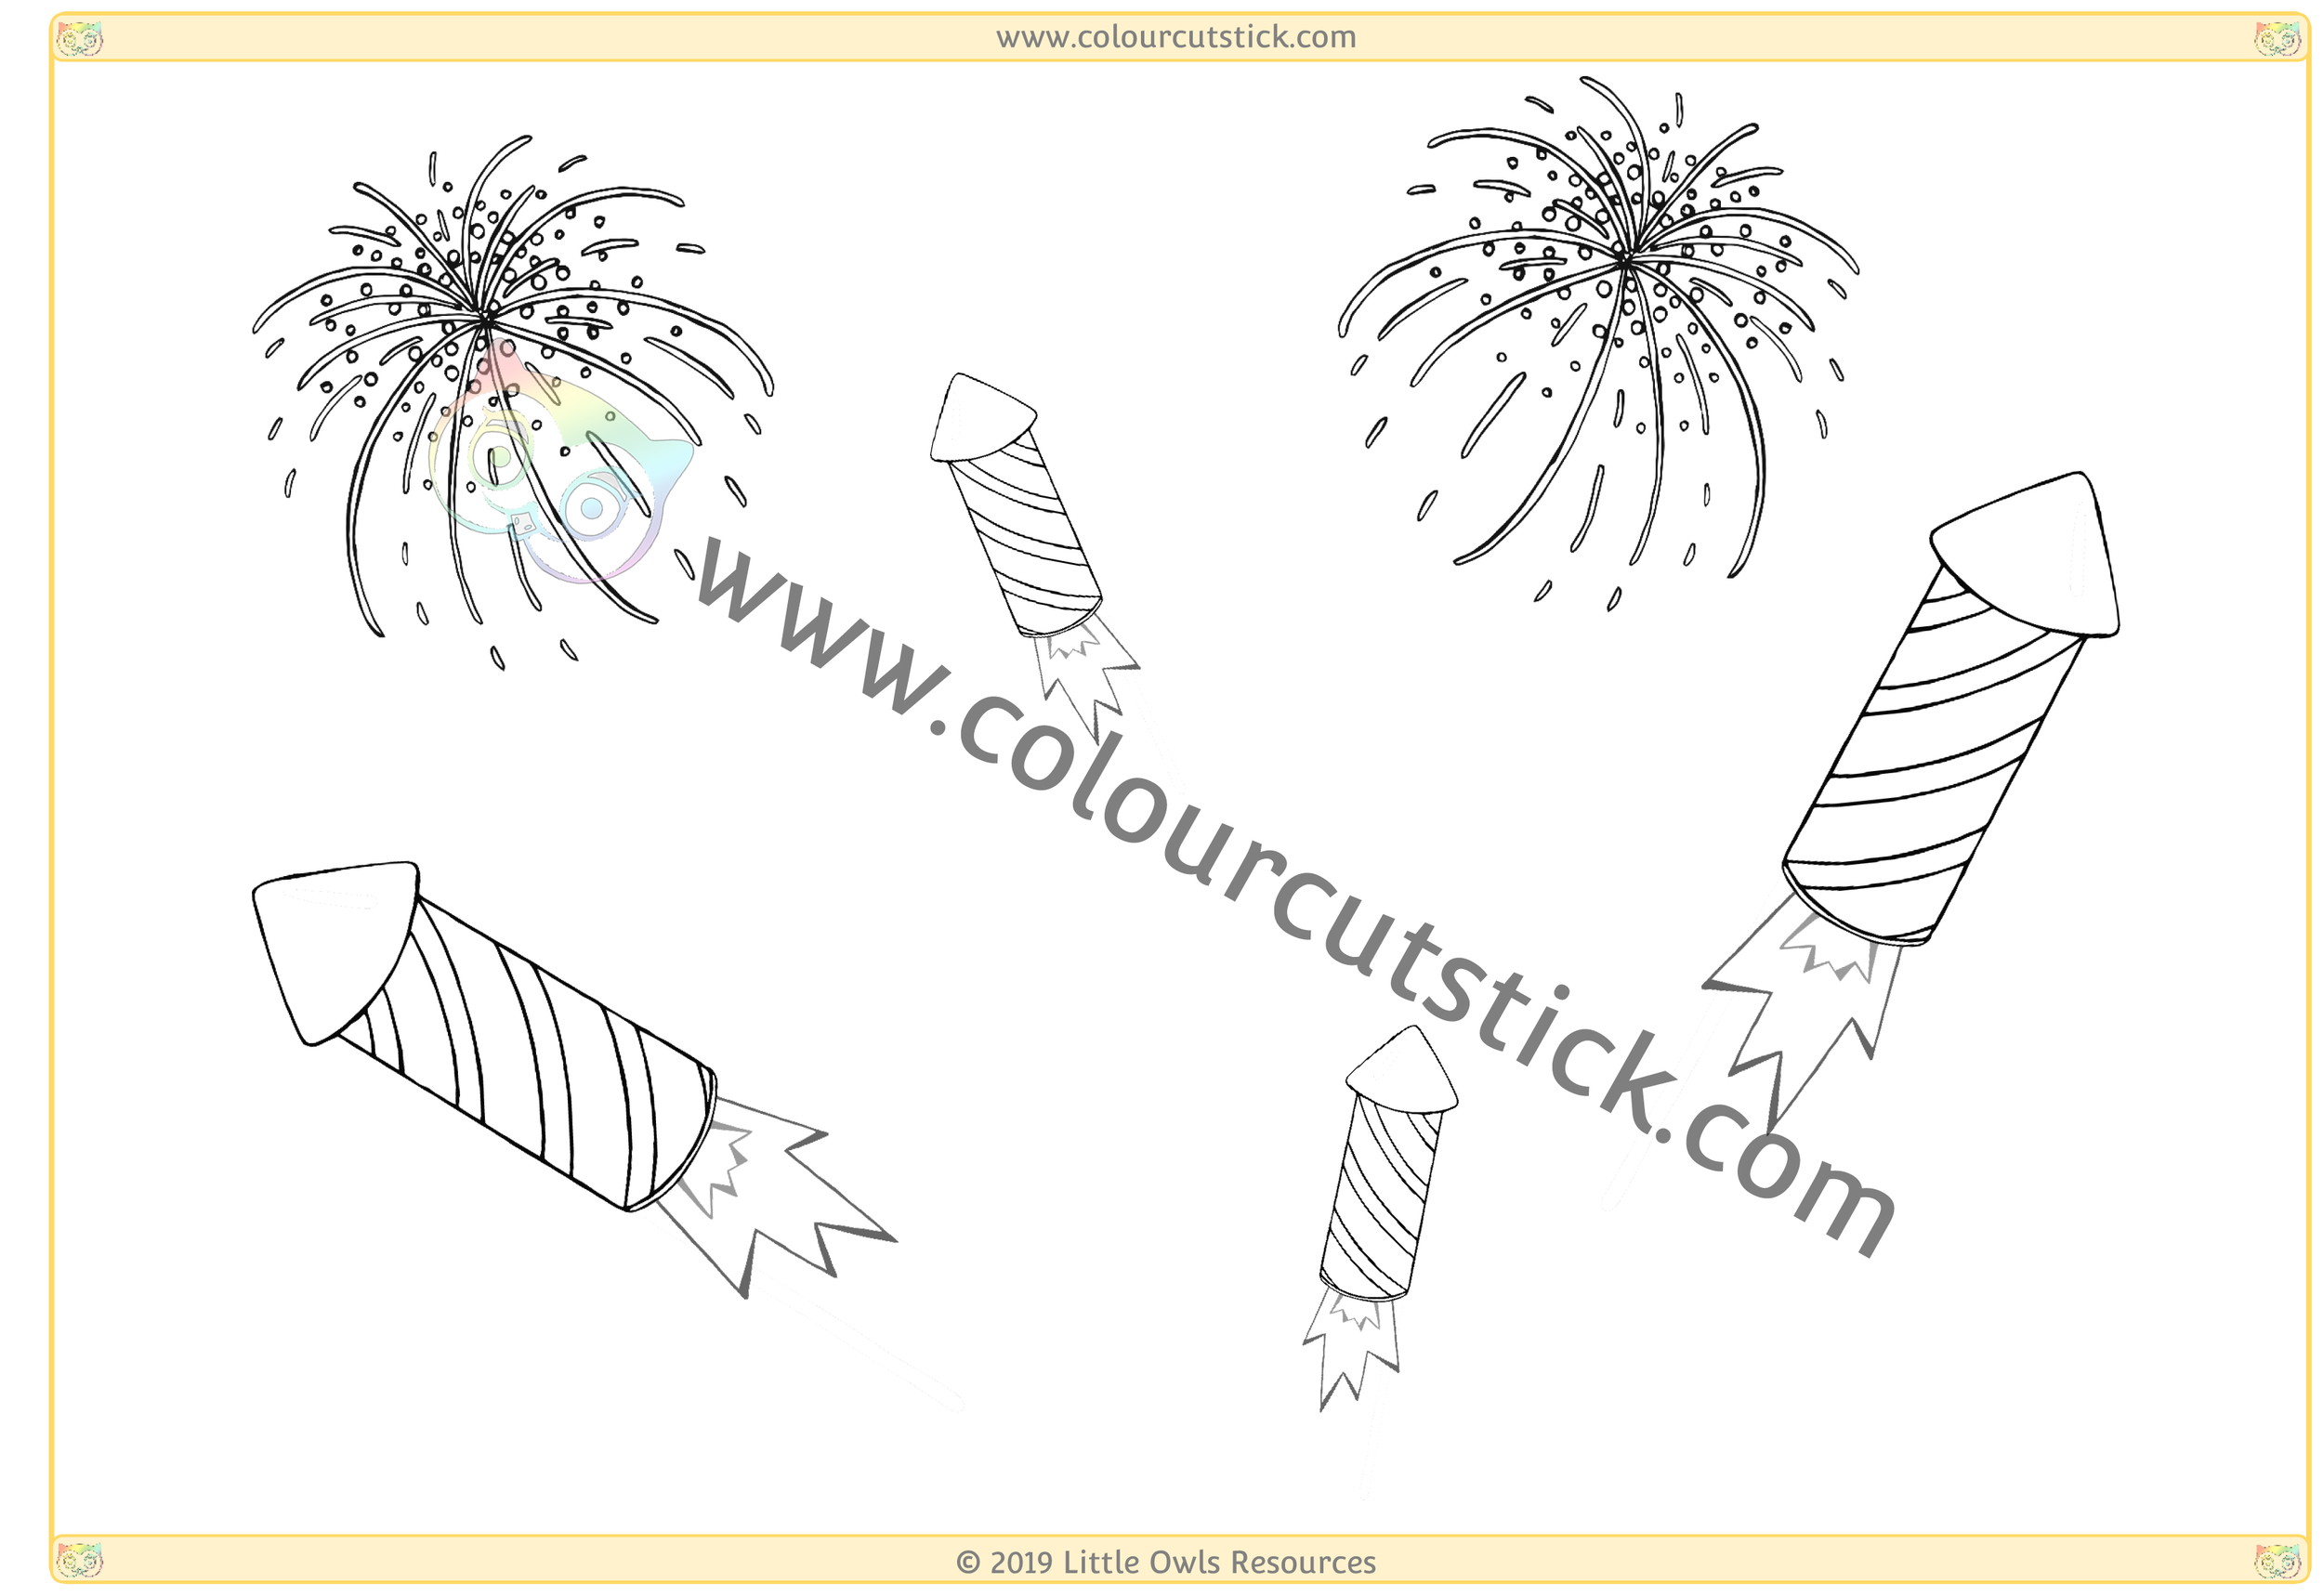 Fireworks Colouring CSS-6.png